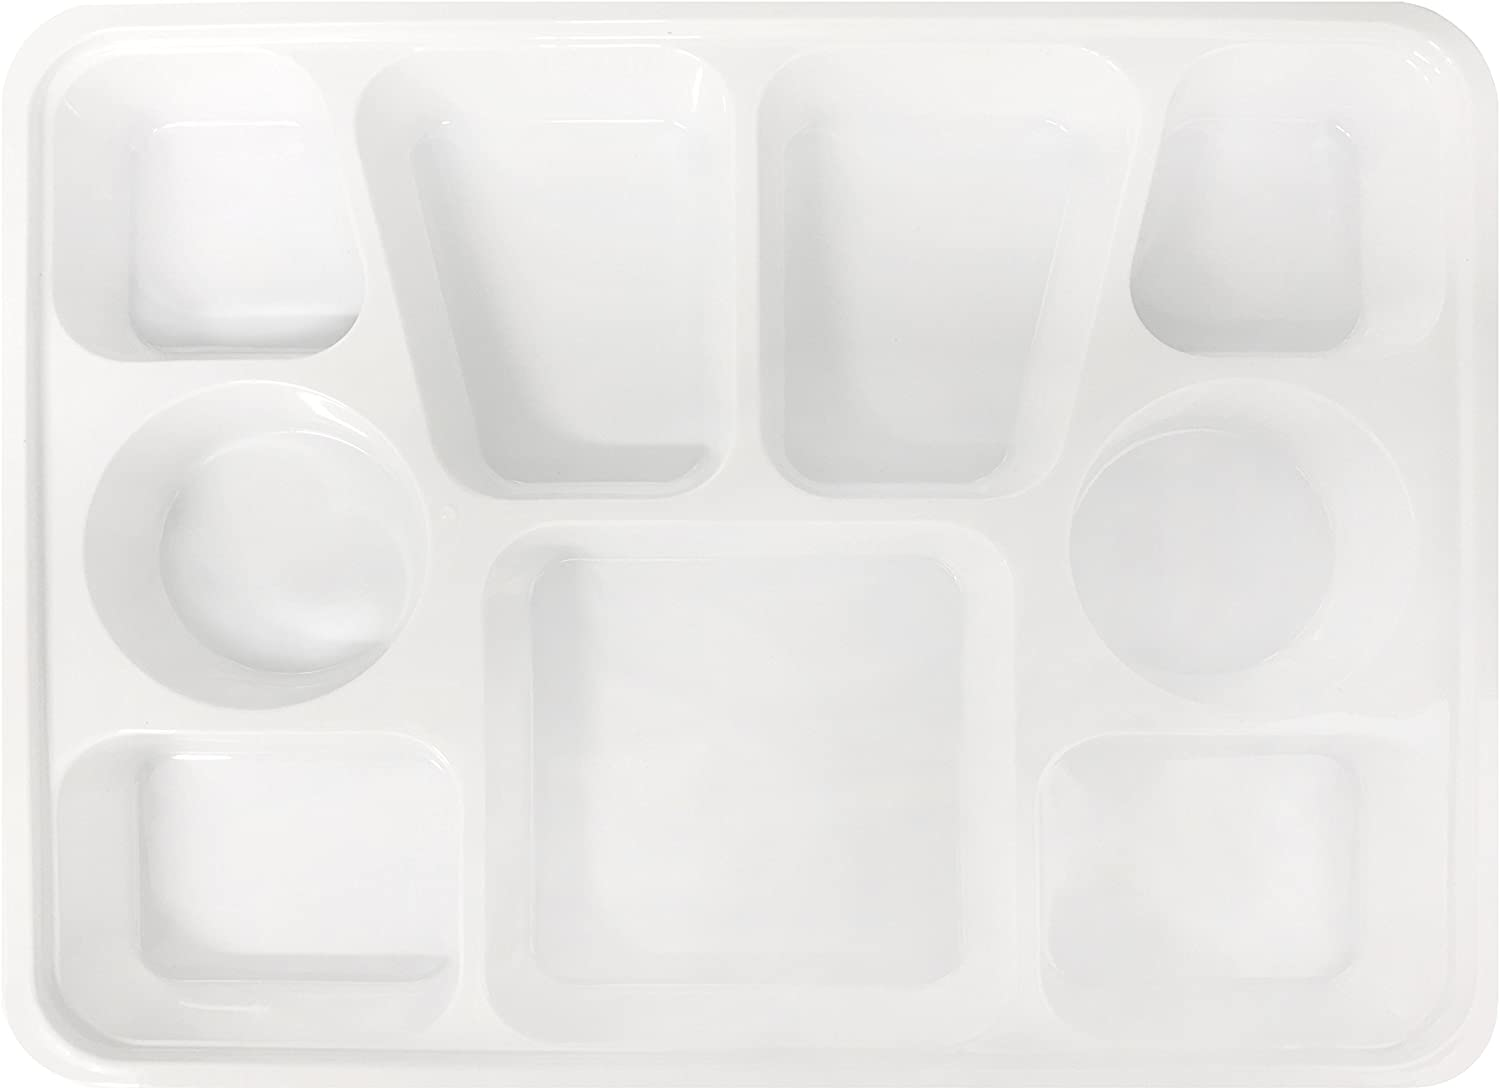 Quality Disposable Plastic Rectangle Plates With 9 Compartments By Ekarro - Pack of 50 Plates